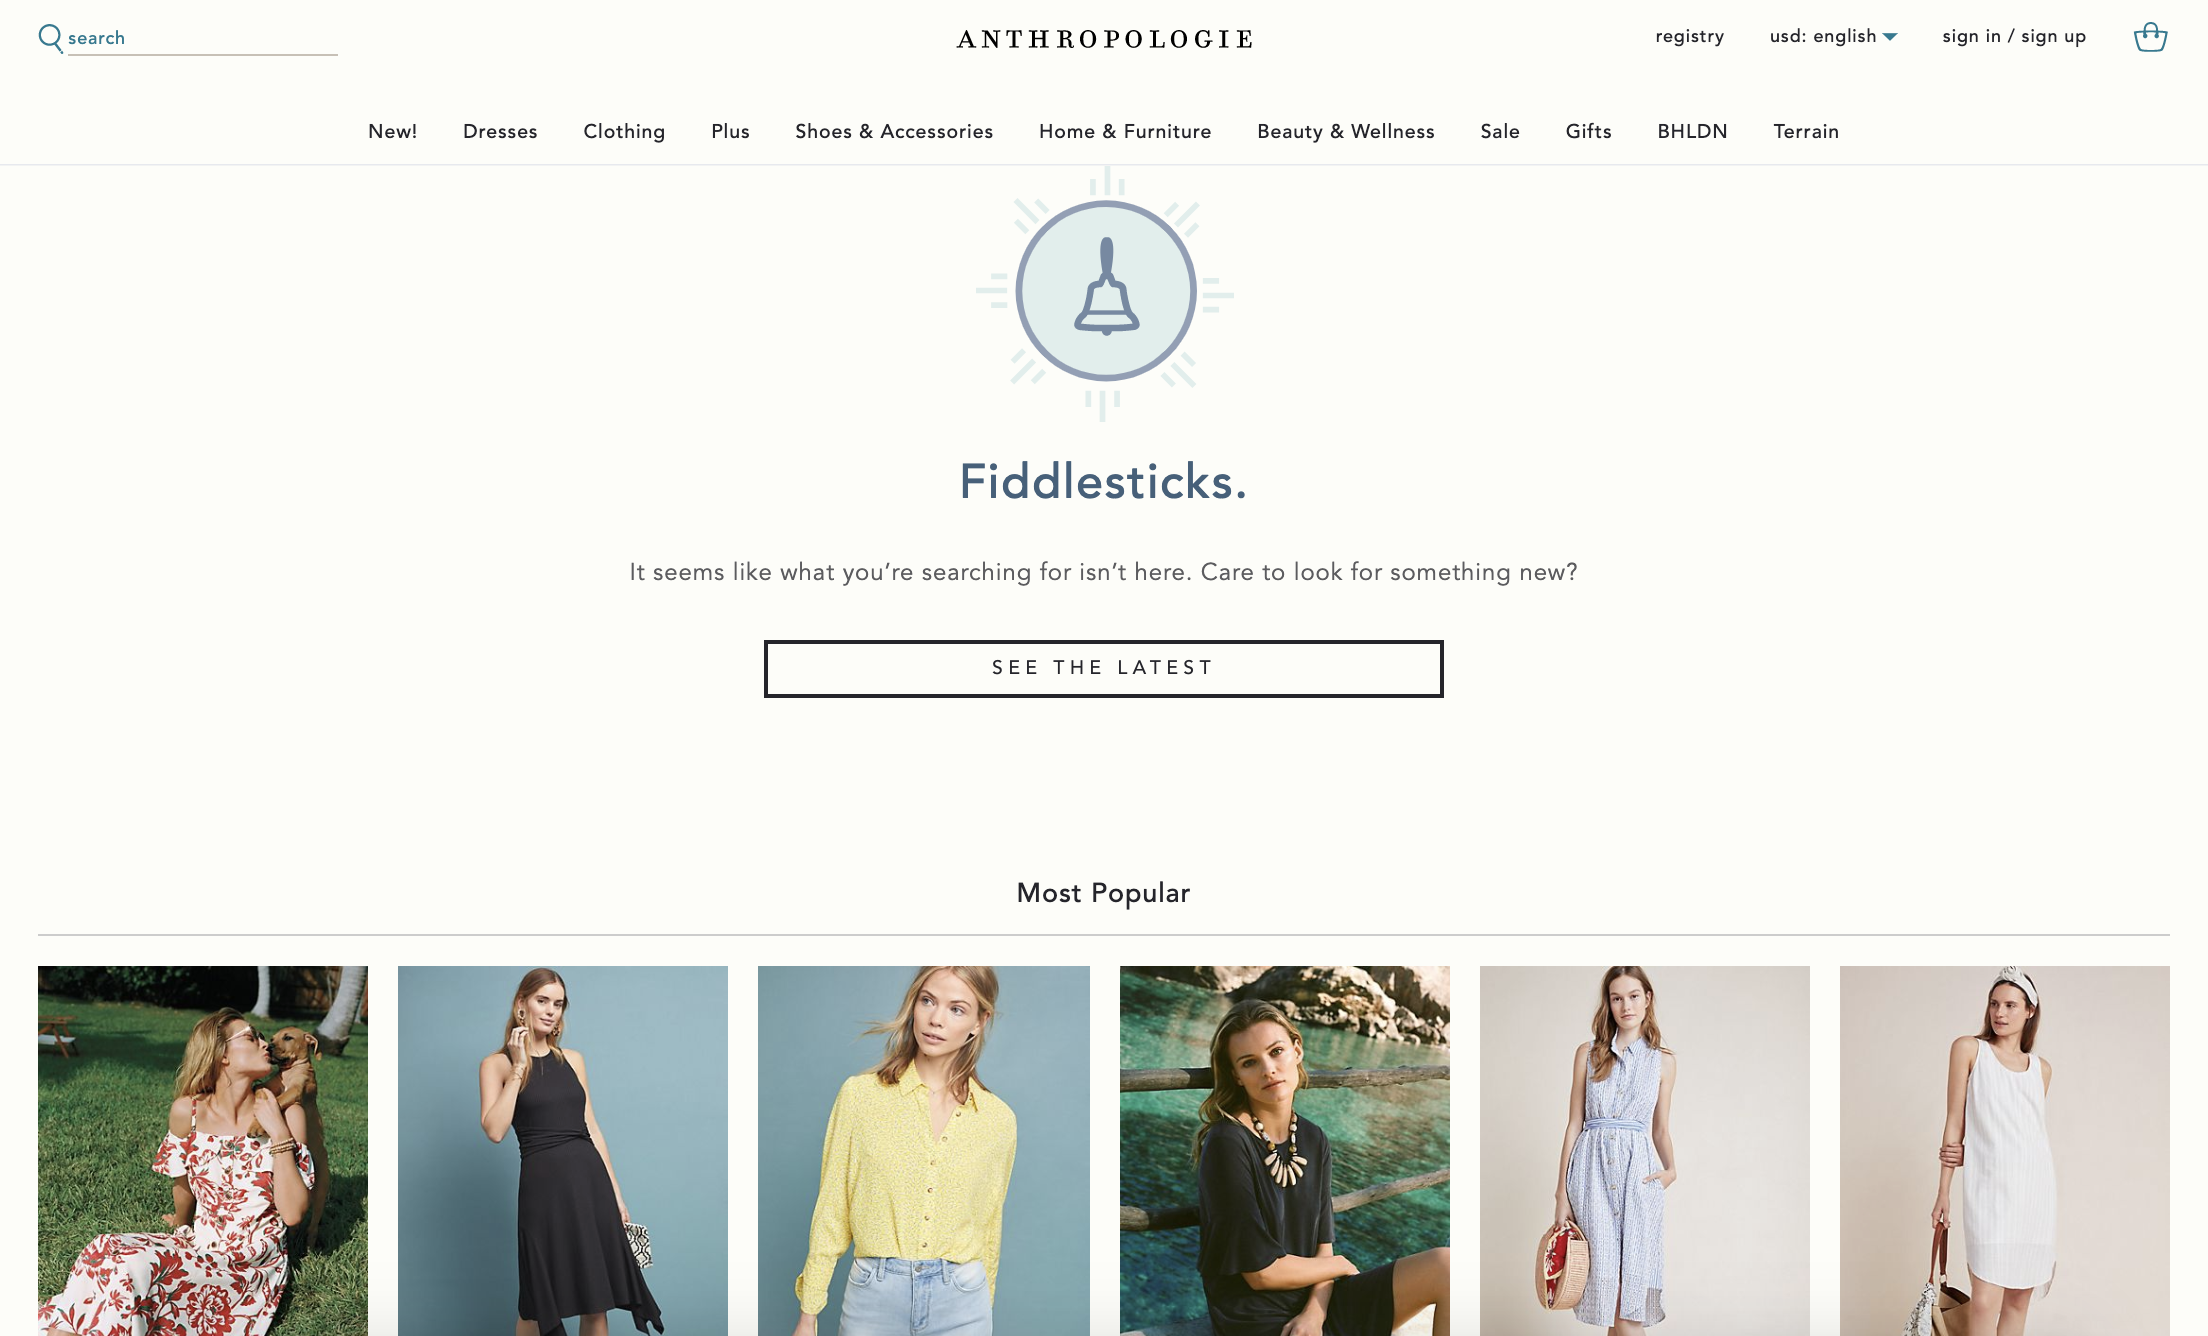 Anthropologie 404 page